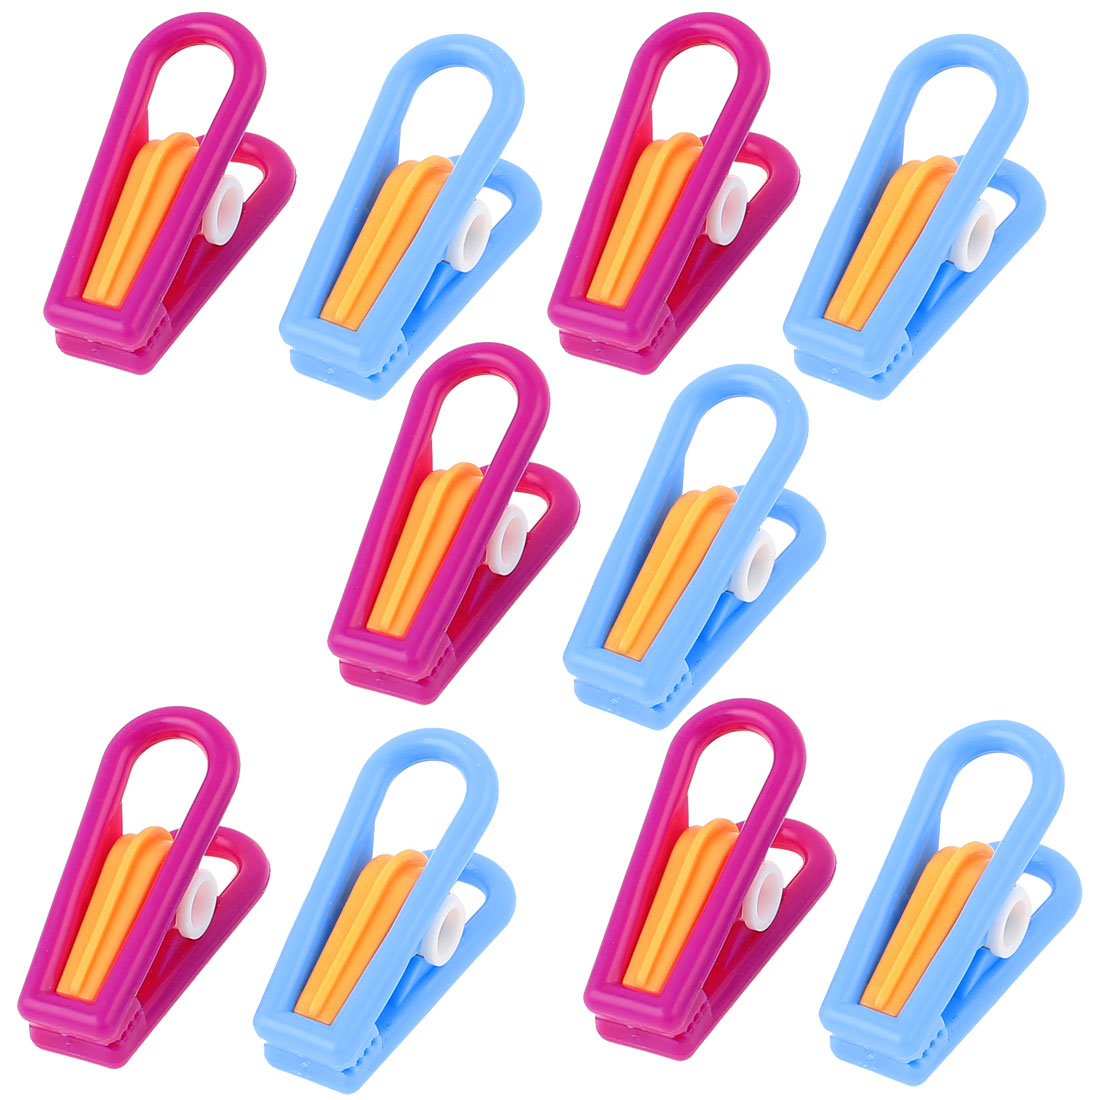 Unique Bargains 10 Pcs Household Plastic Nonslip Multipurpose Clothing Clothespins Clips Multicolour